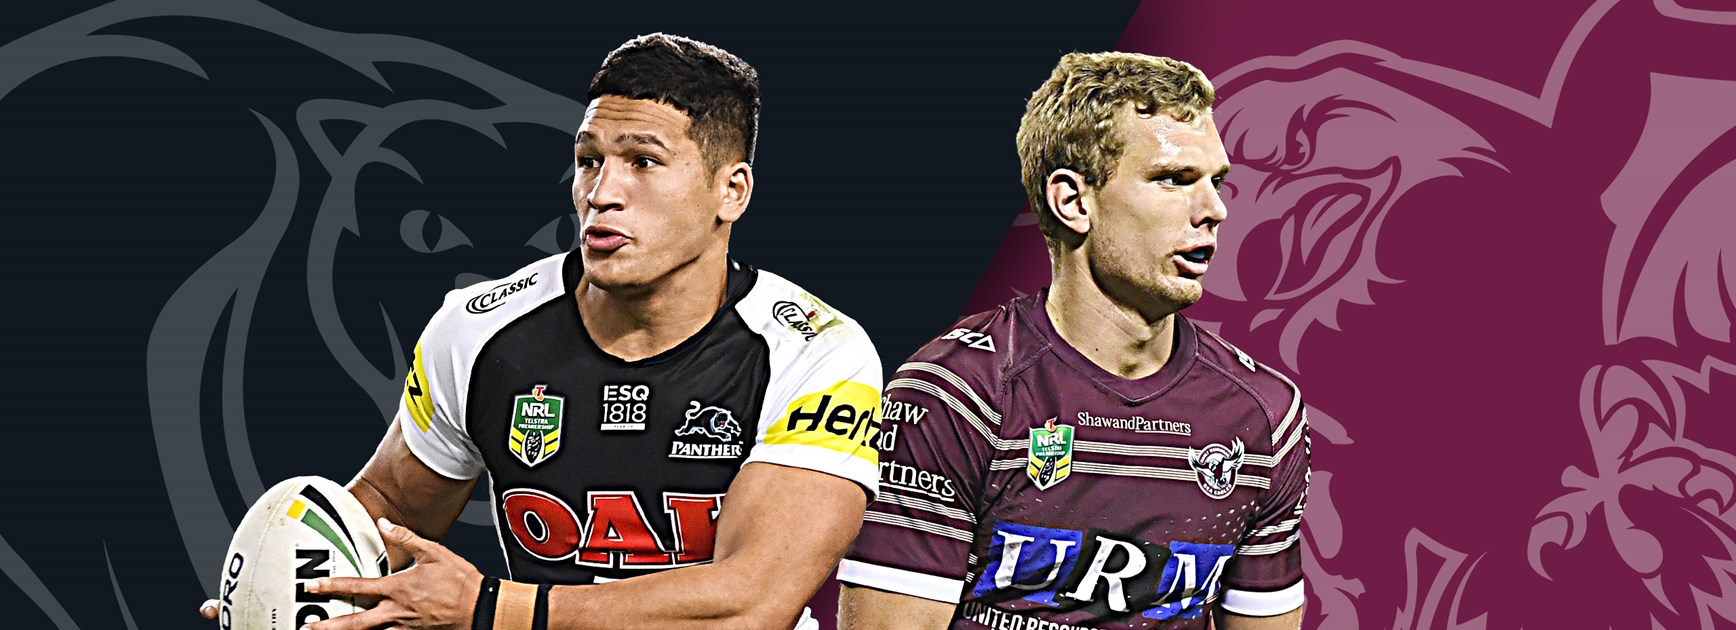 Panthers v Sea Eagles: Taufua out, Lane to start; Panthers' rep stars to back up